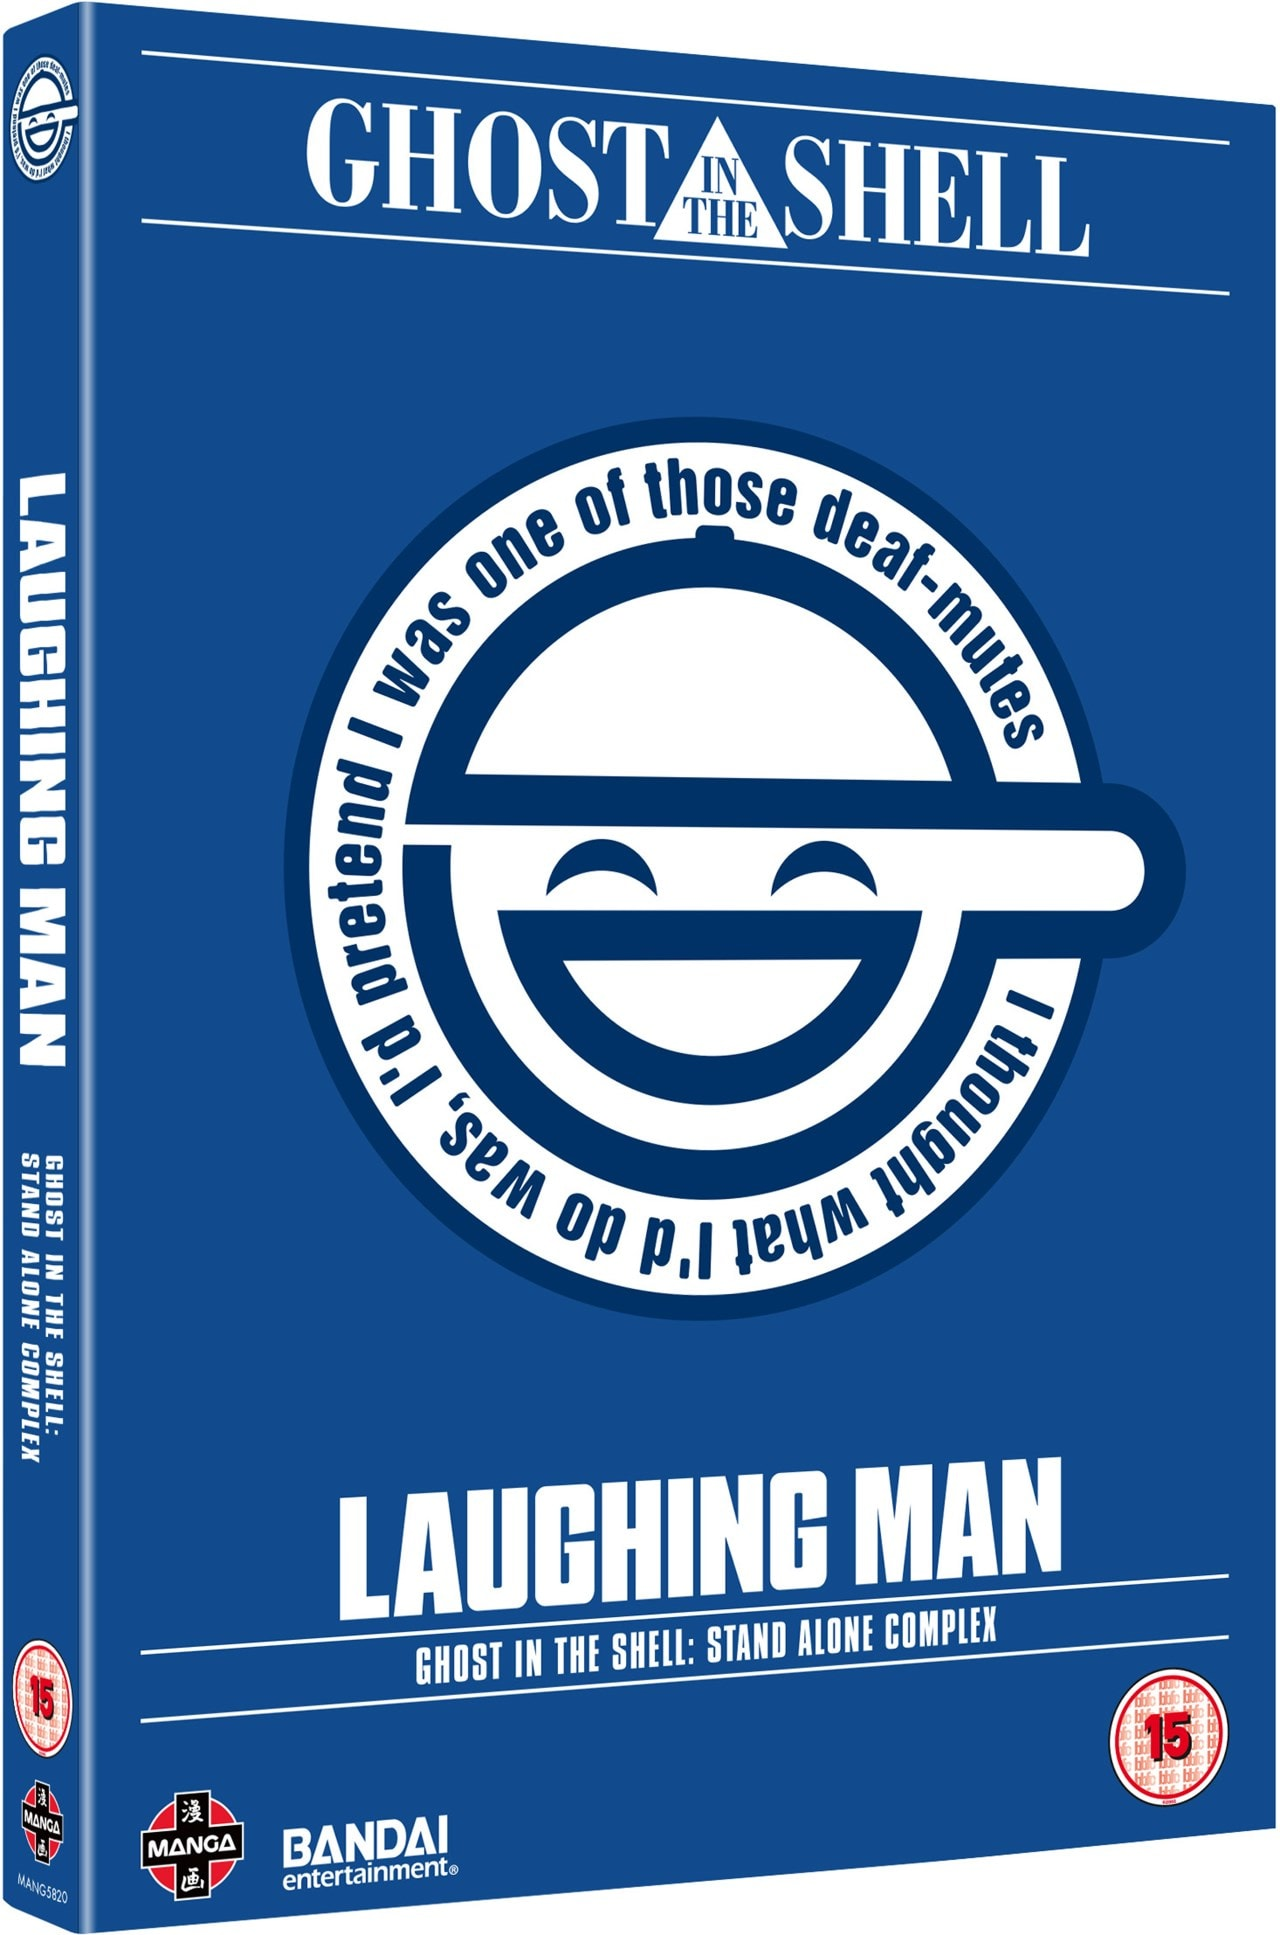 Ghost In The Shell Stand Alone Complex The Laughing Man Dvd Free Shipping Over 20 Hmv Store